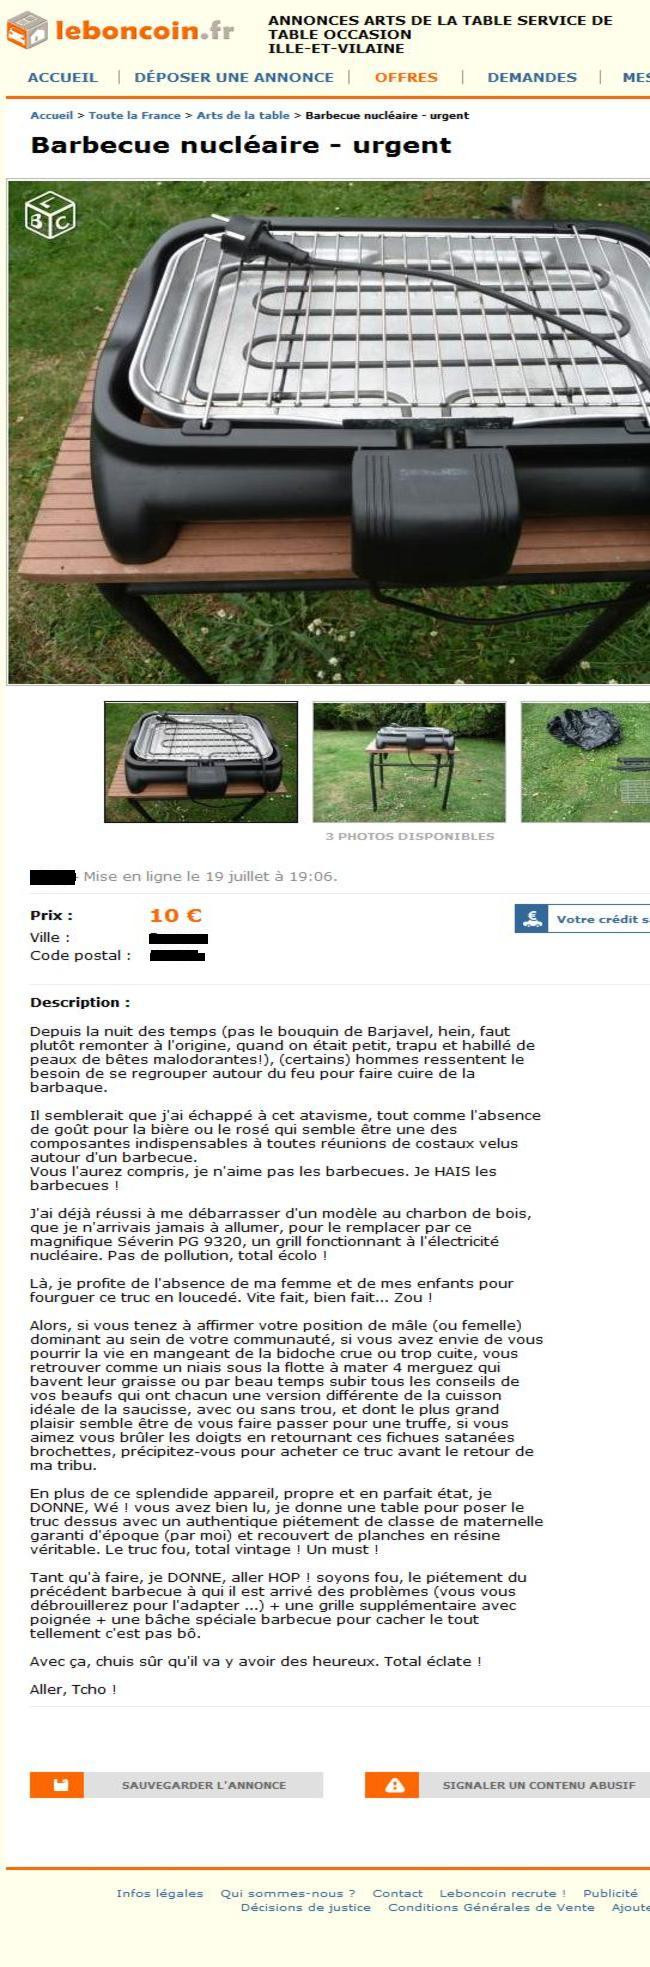 Le Bon Coin - barbecue